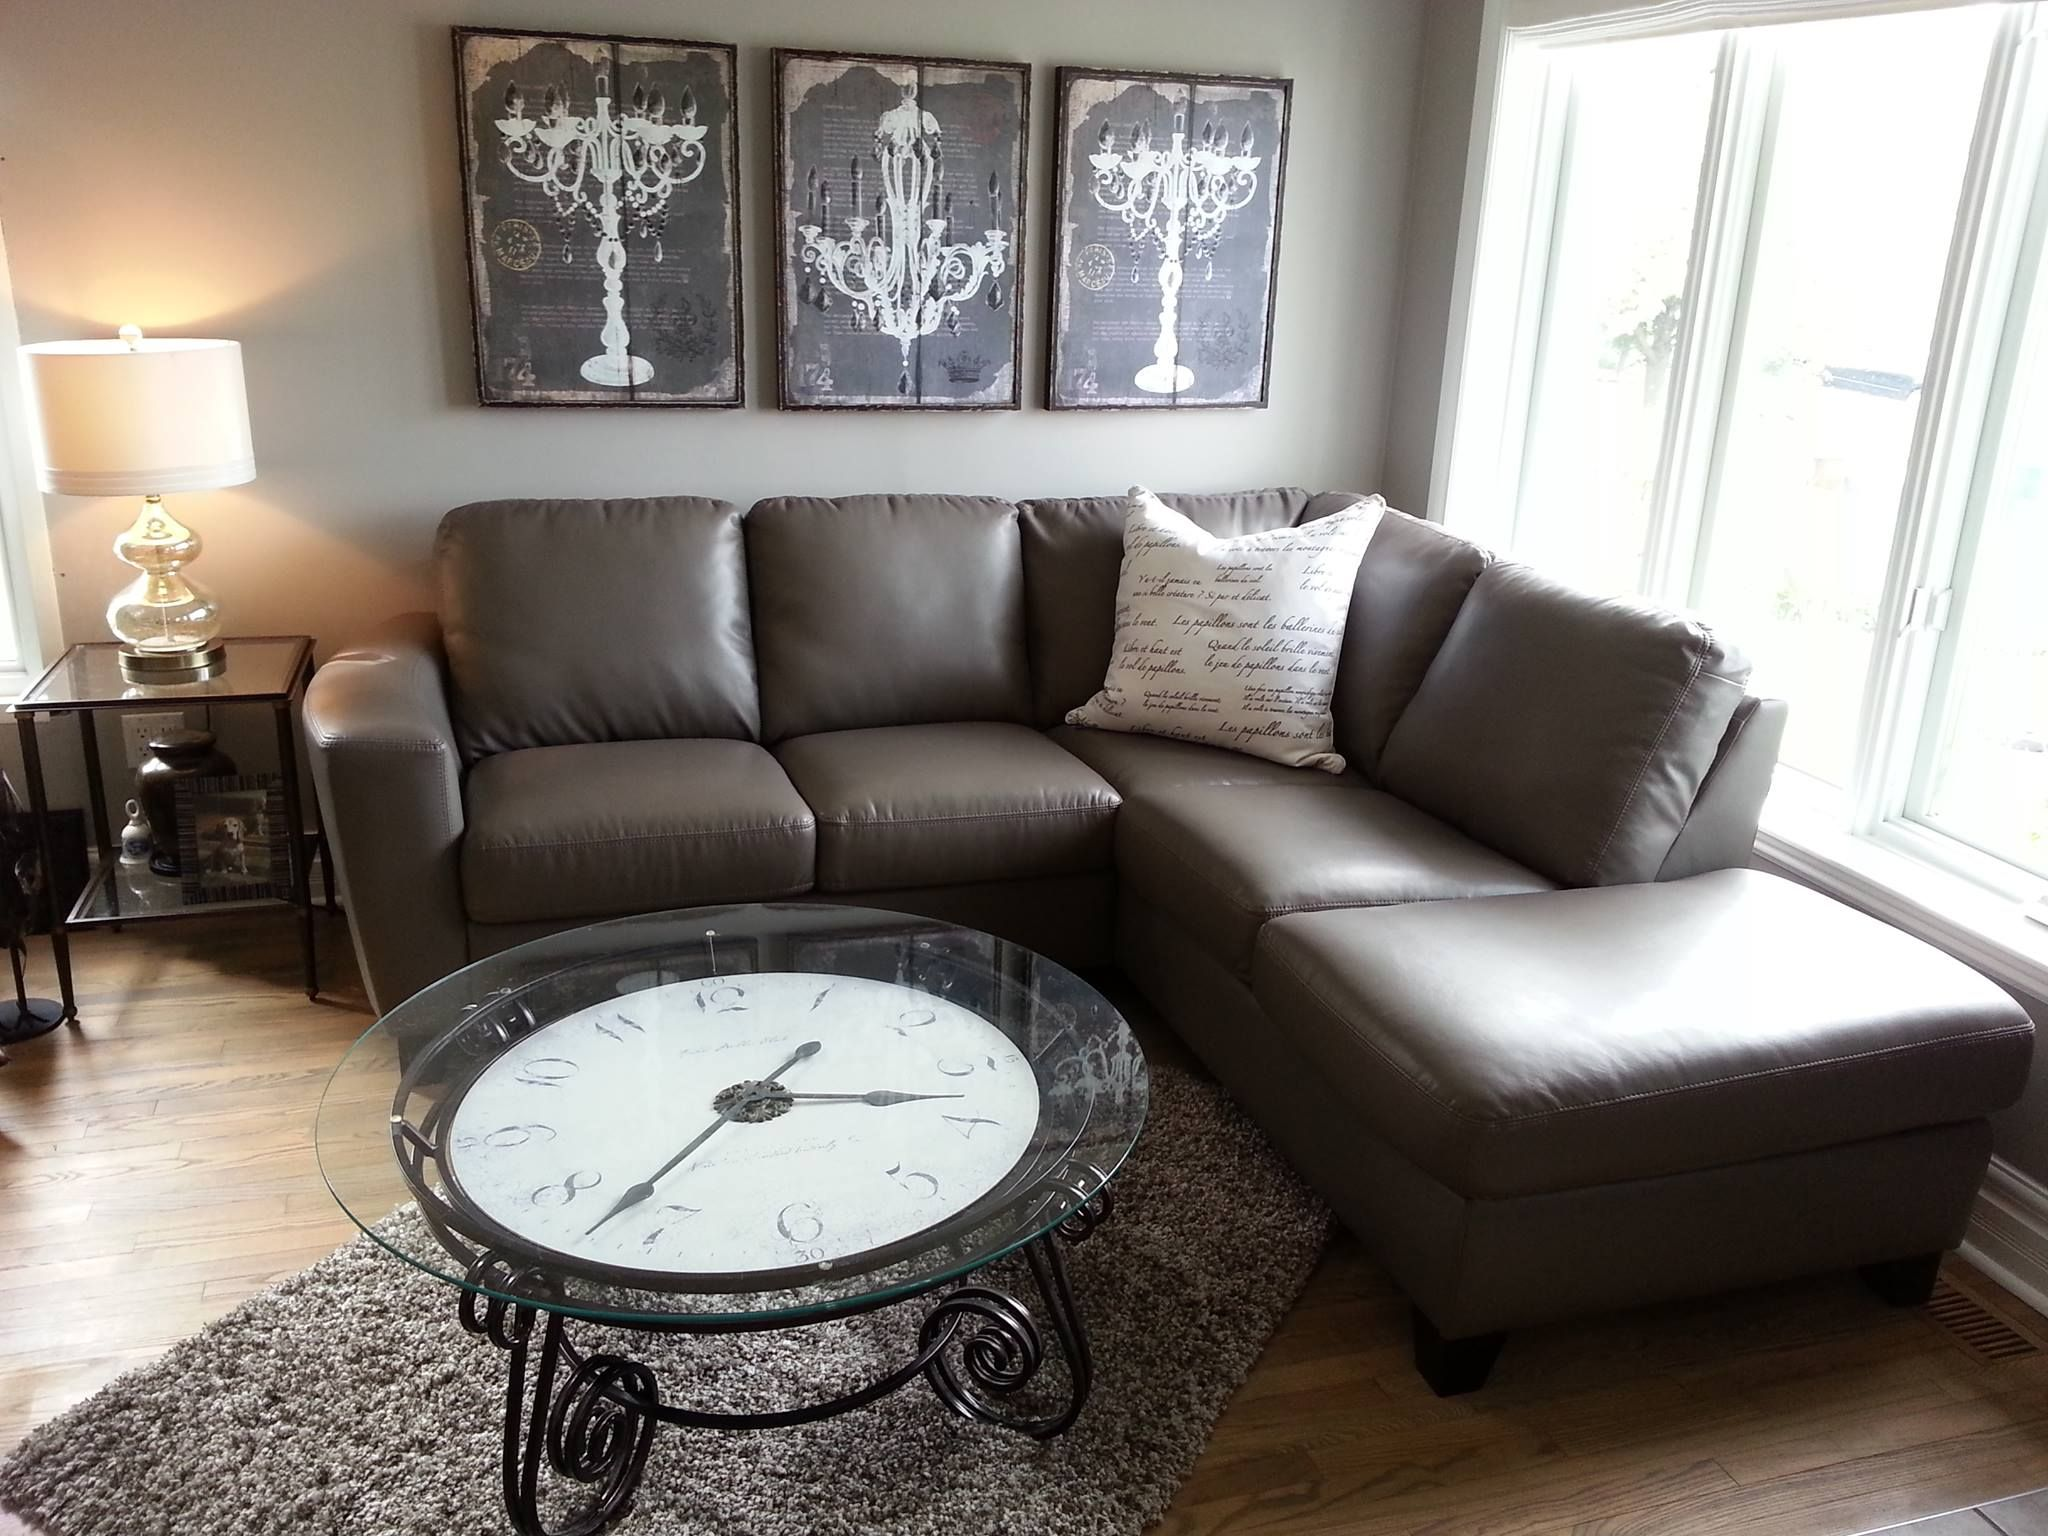 livingroom leeds leeds in a well styled living room photo courtesy of jo anne palliser furniture furniture 7281